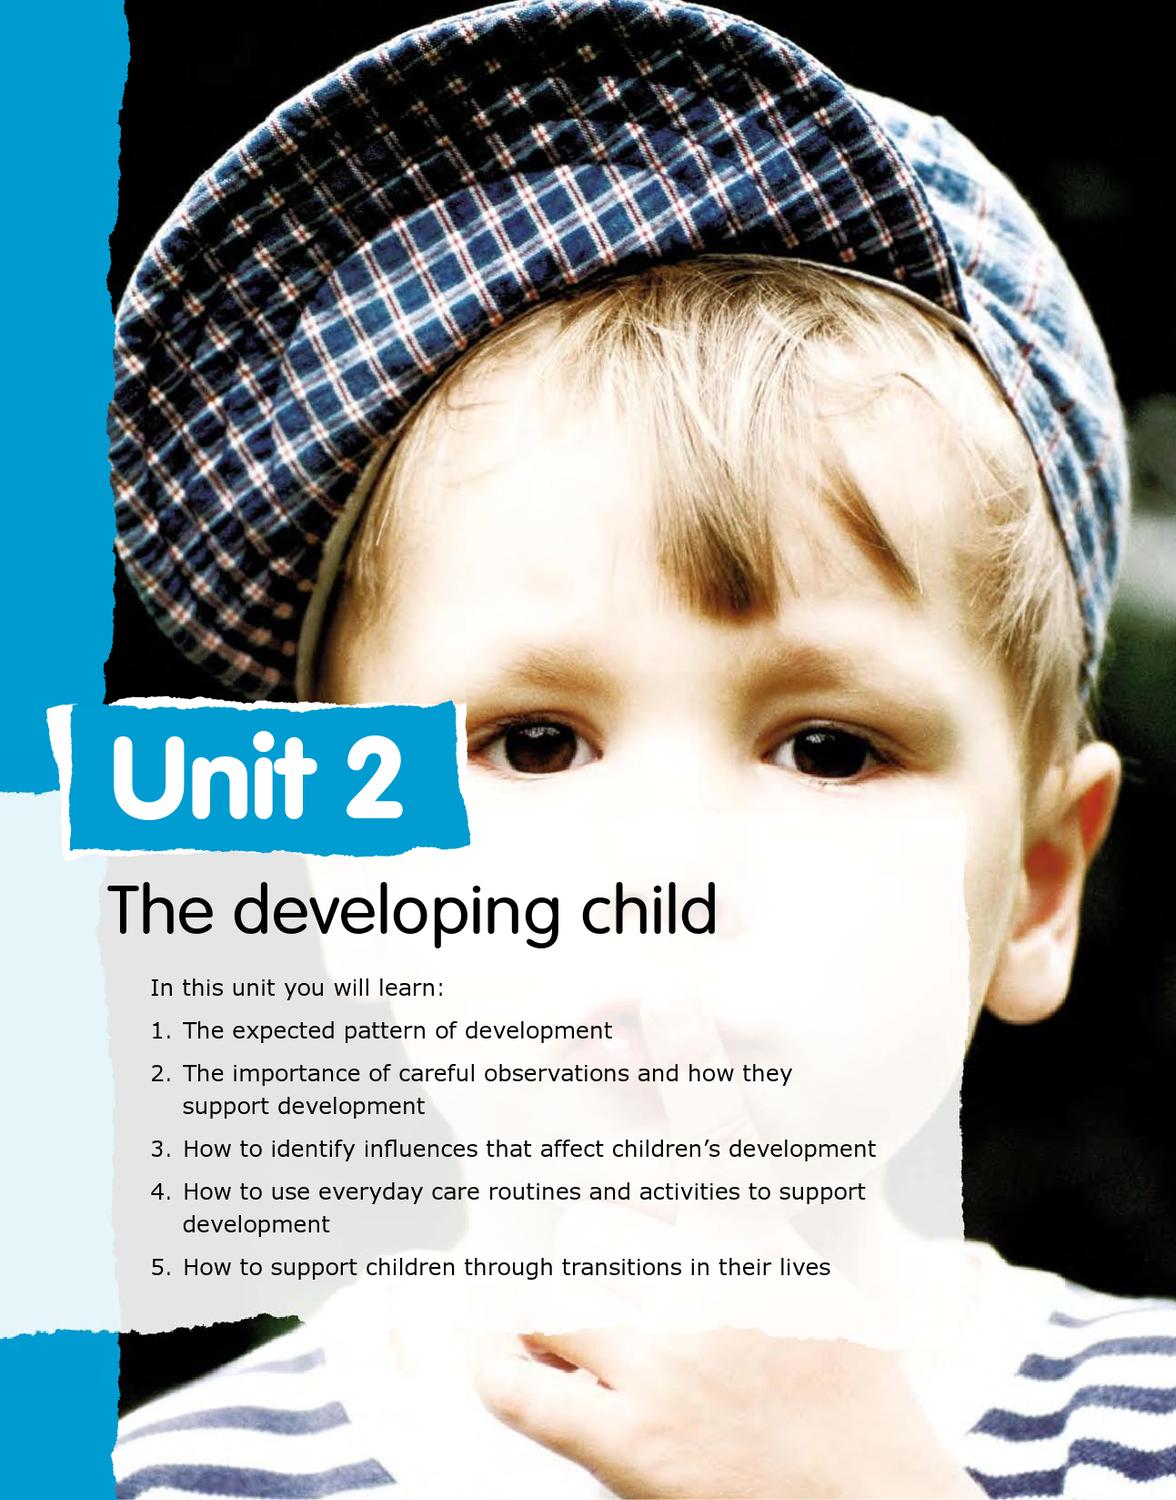 cache child care level 2 unit Cache level 2 child care 36 likes cache level 2 child care is here so:we can help one another outget extra info of each other but we must not cheat and.